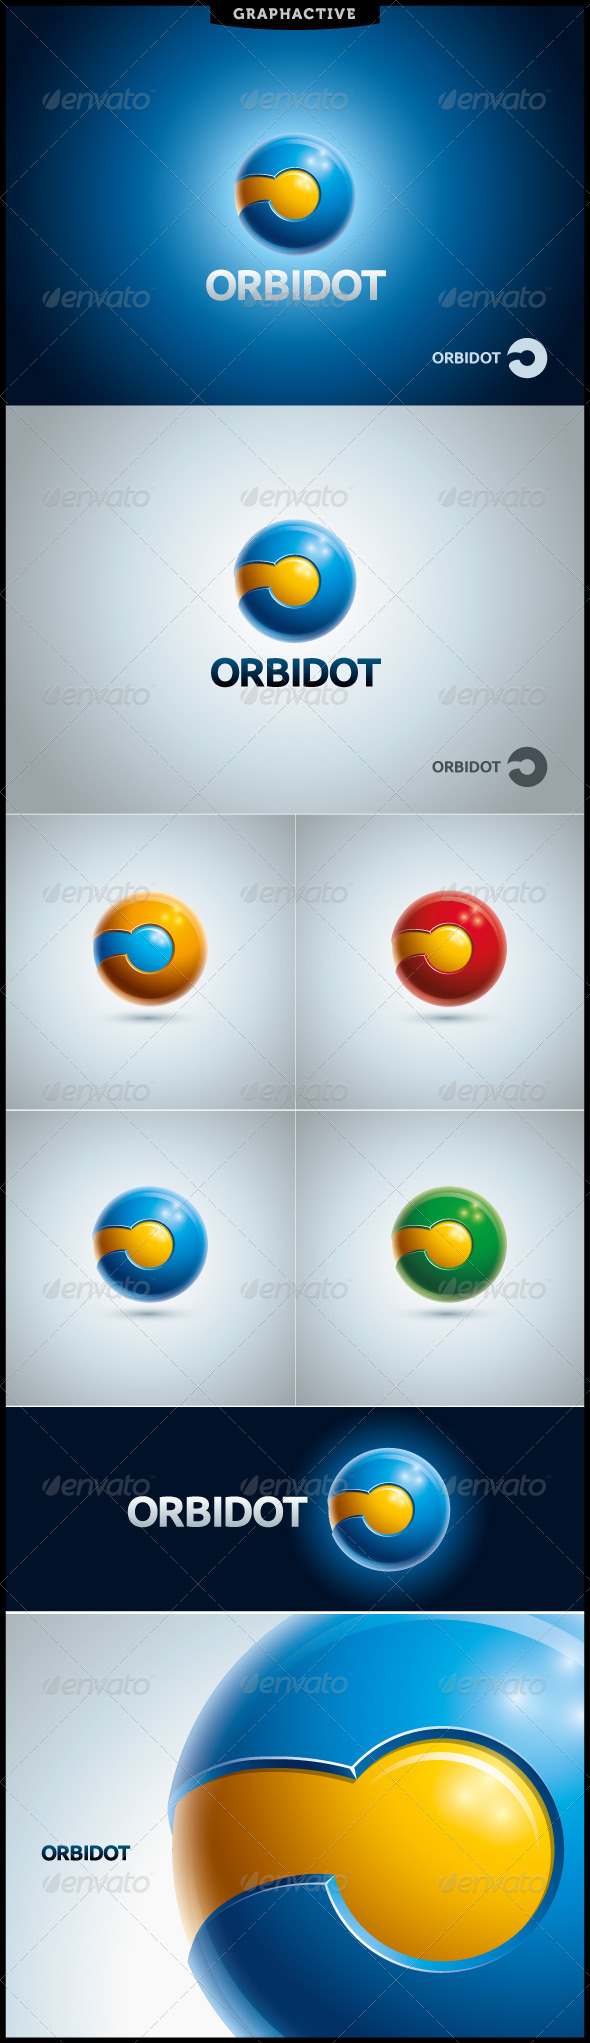 Orbidot Globe Logo Template - 3d Abstract